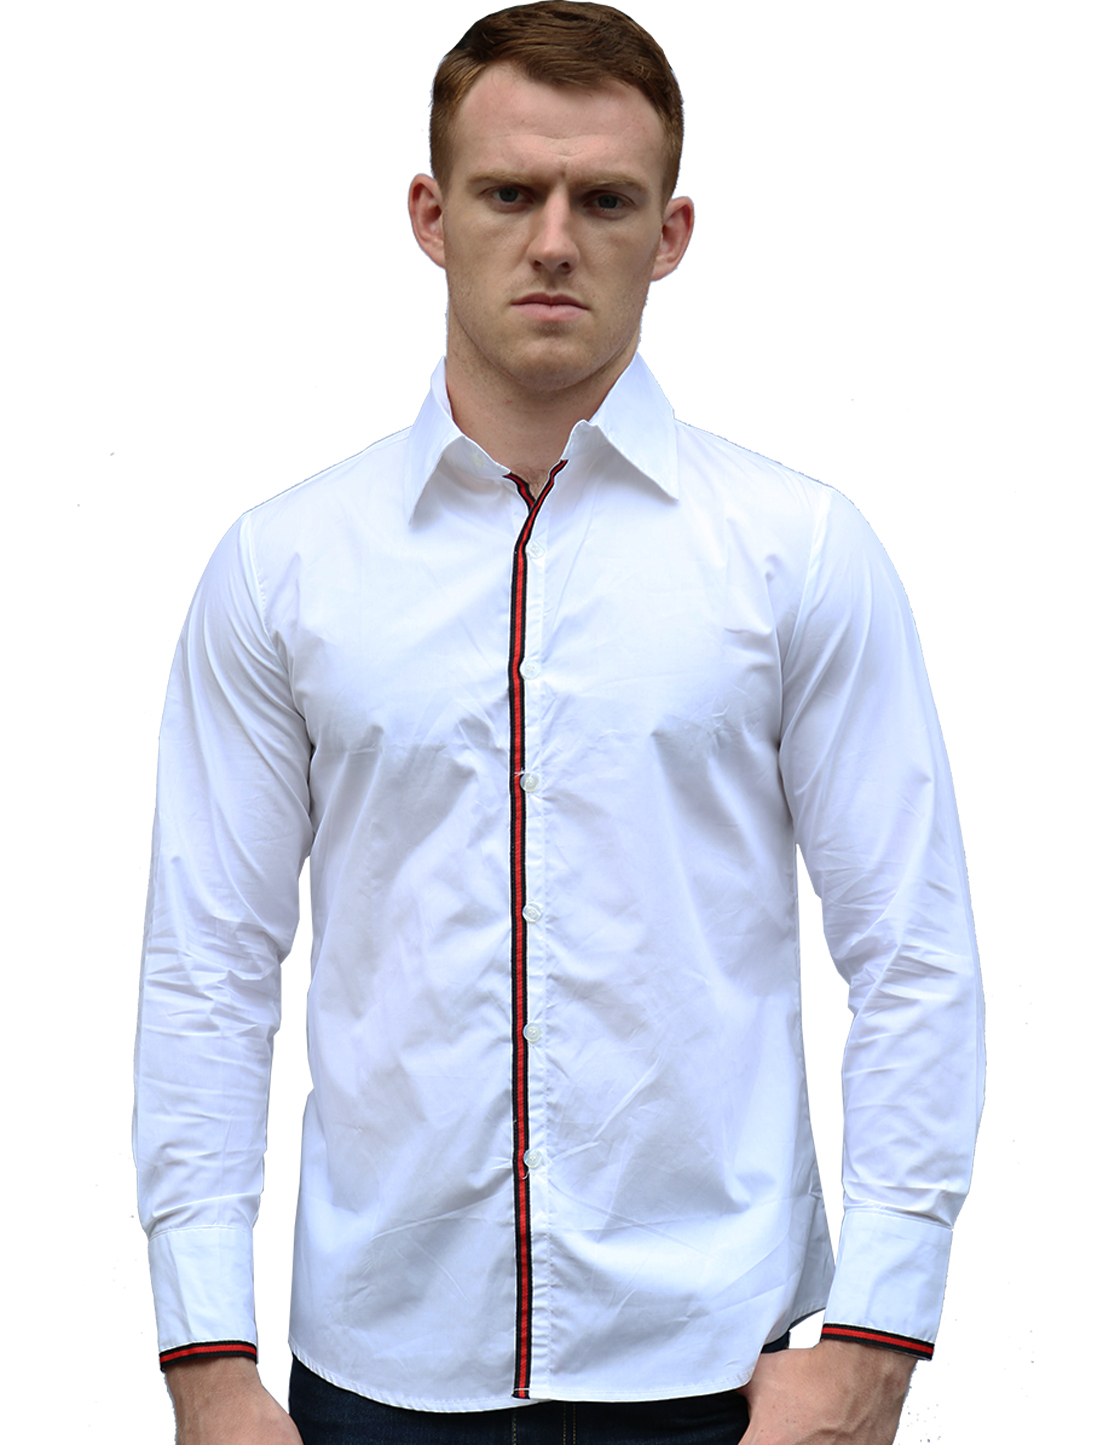 Men Buttoned Cuffs Stripes Lined Detail Slim Fit Shirt White S